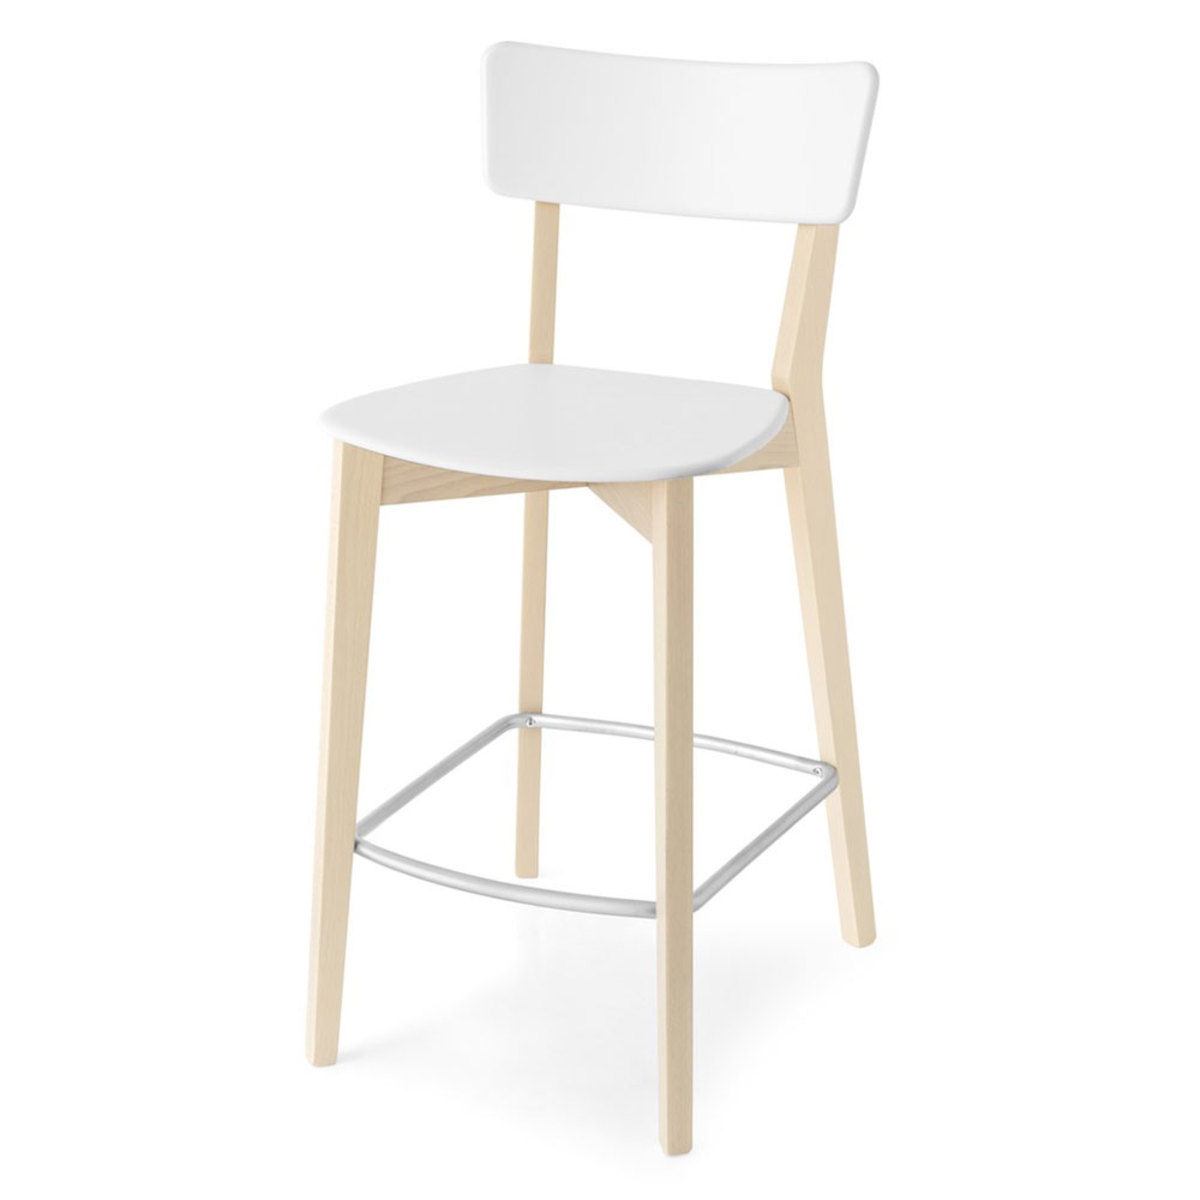 tabouret de bar blanc gifi maison et mobilier d 39 int rieur. Black Bedroom Furniture Sets. Home Design Ideas